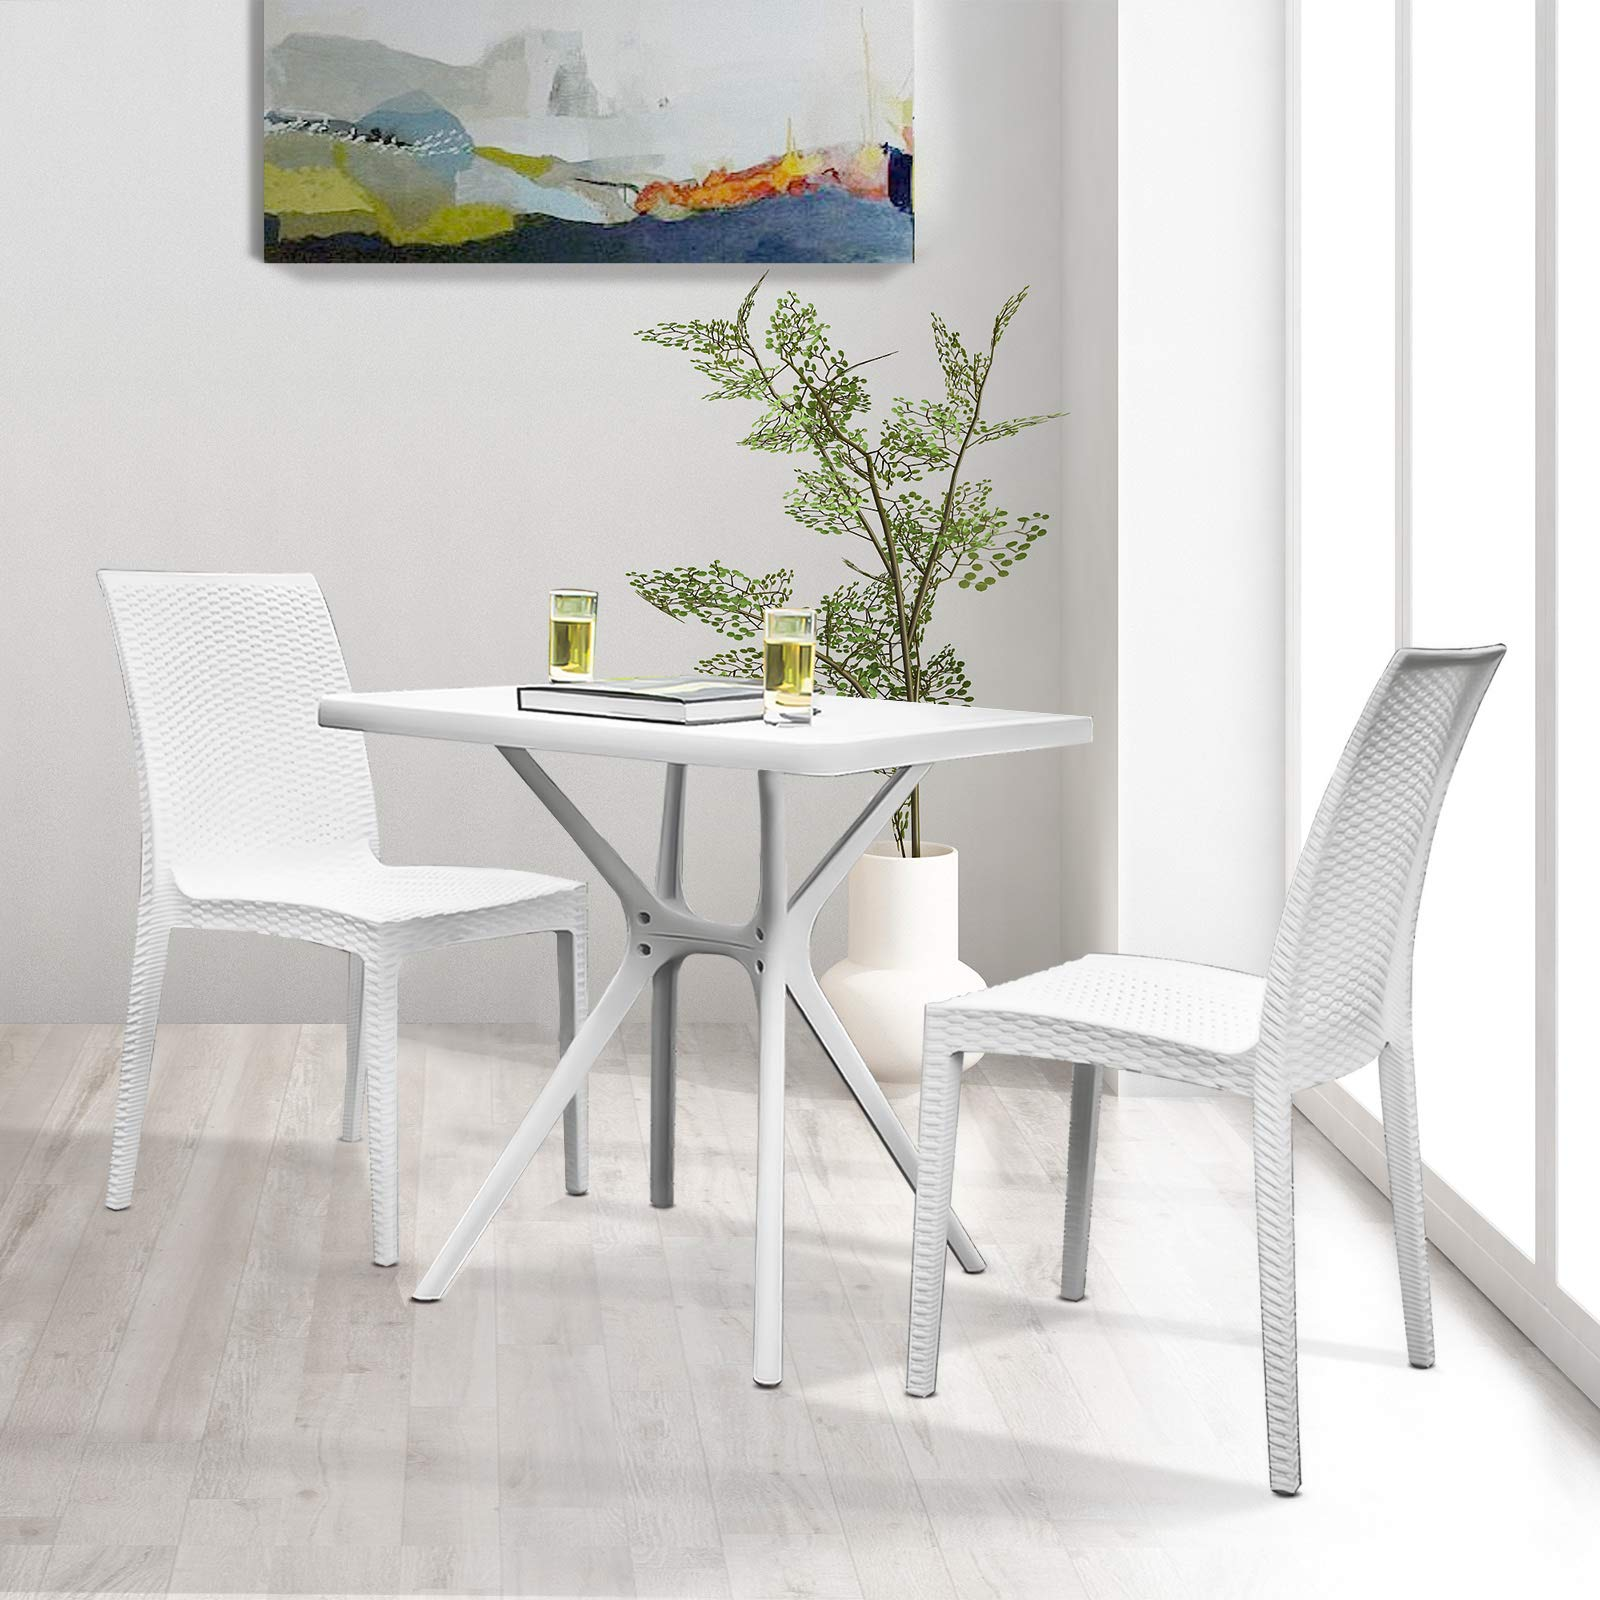 Furgle Dining Set White Kitchen Table with 10 Chairs, Mid Century Country  Wicker Rattan Style Patio Breakfast Nook Plastic Furniture Sets for Dining